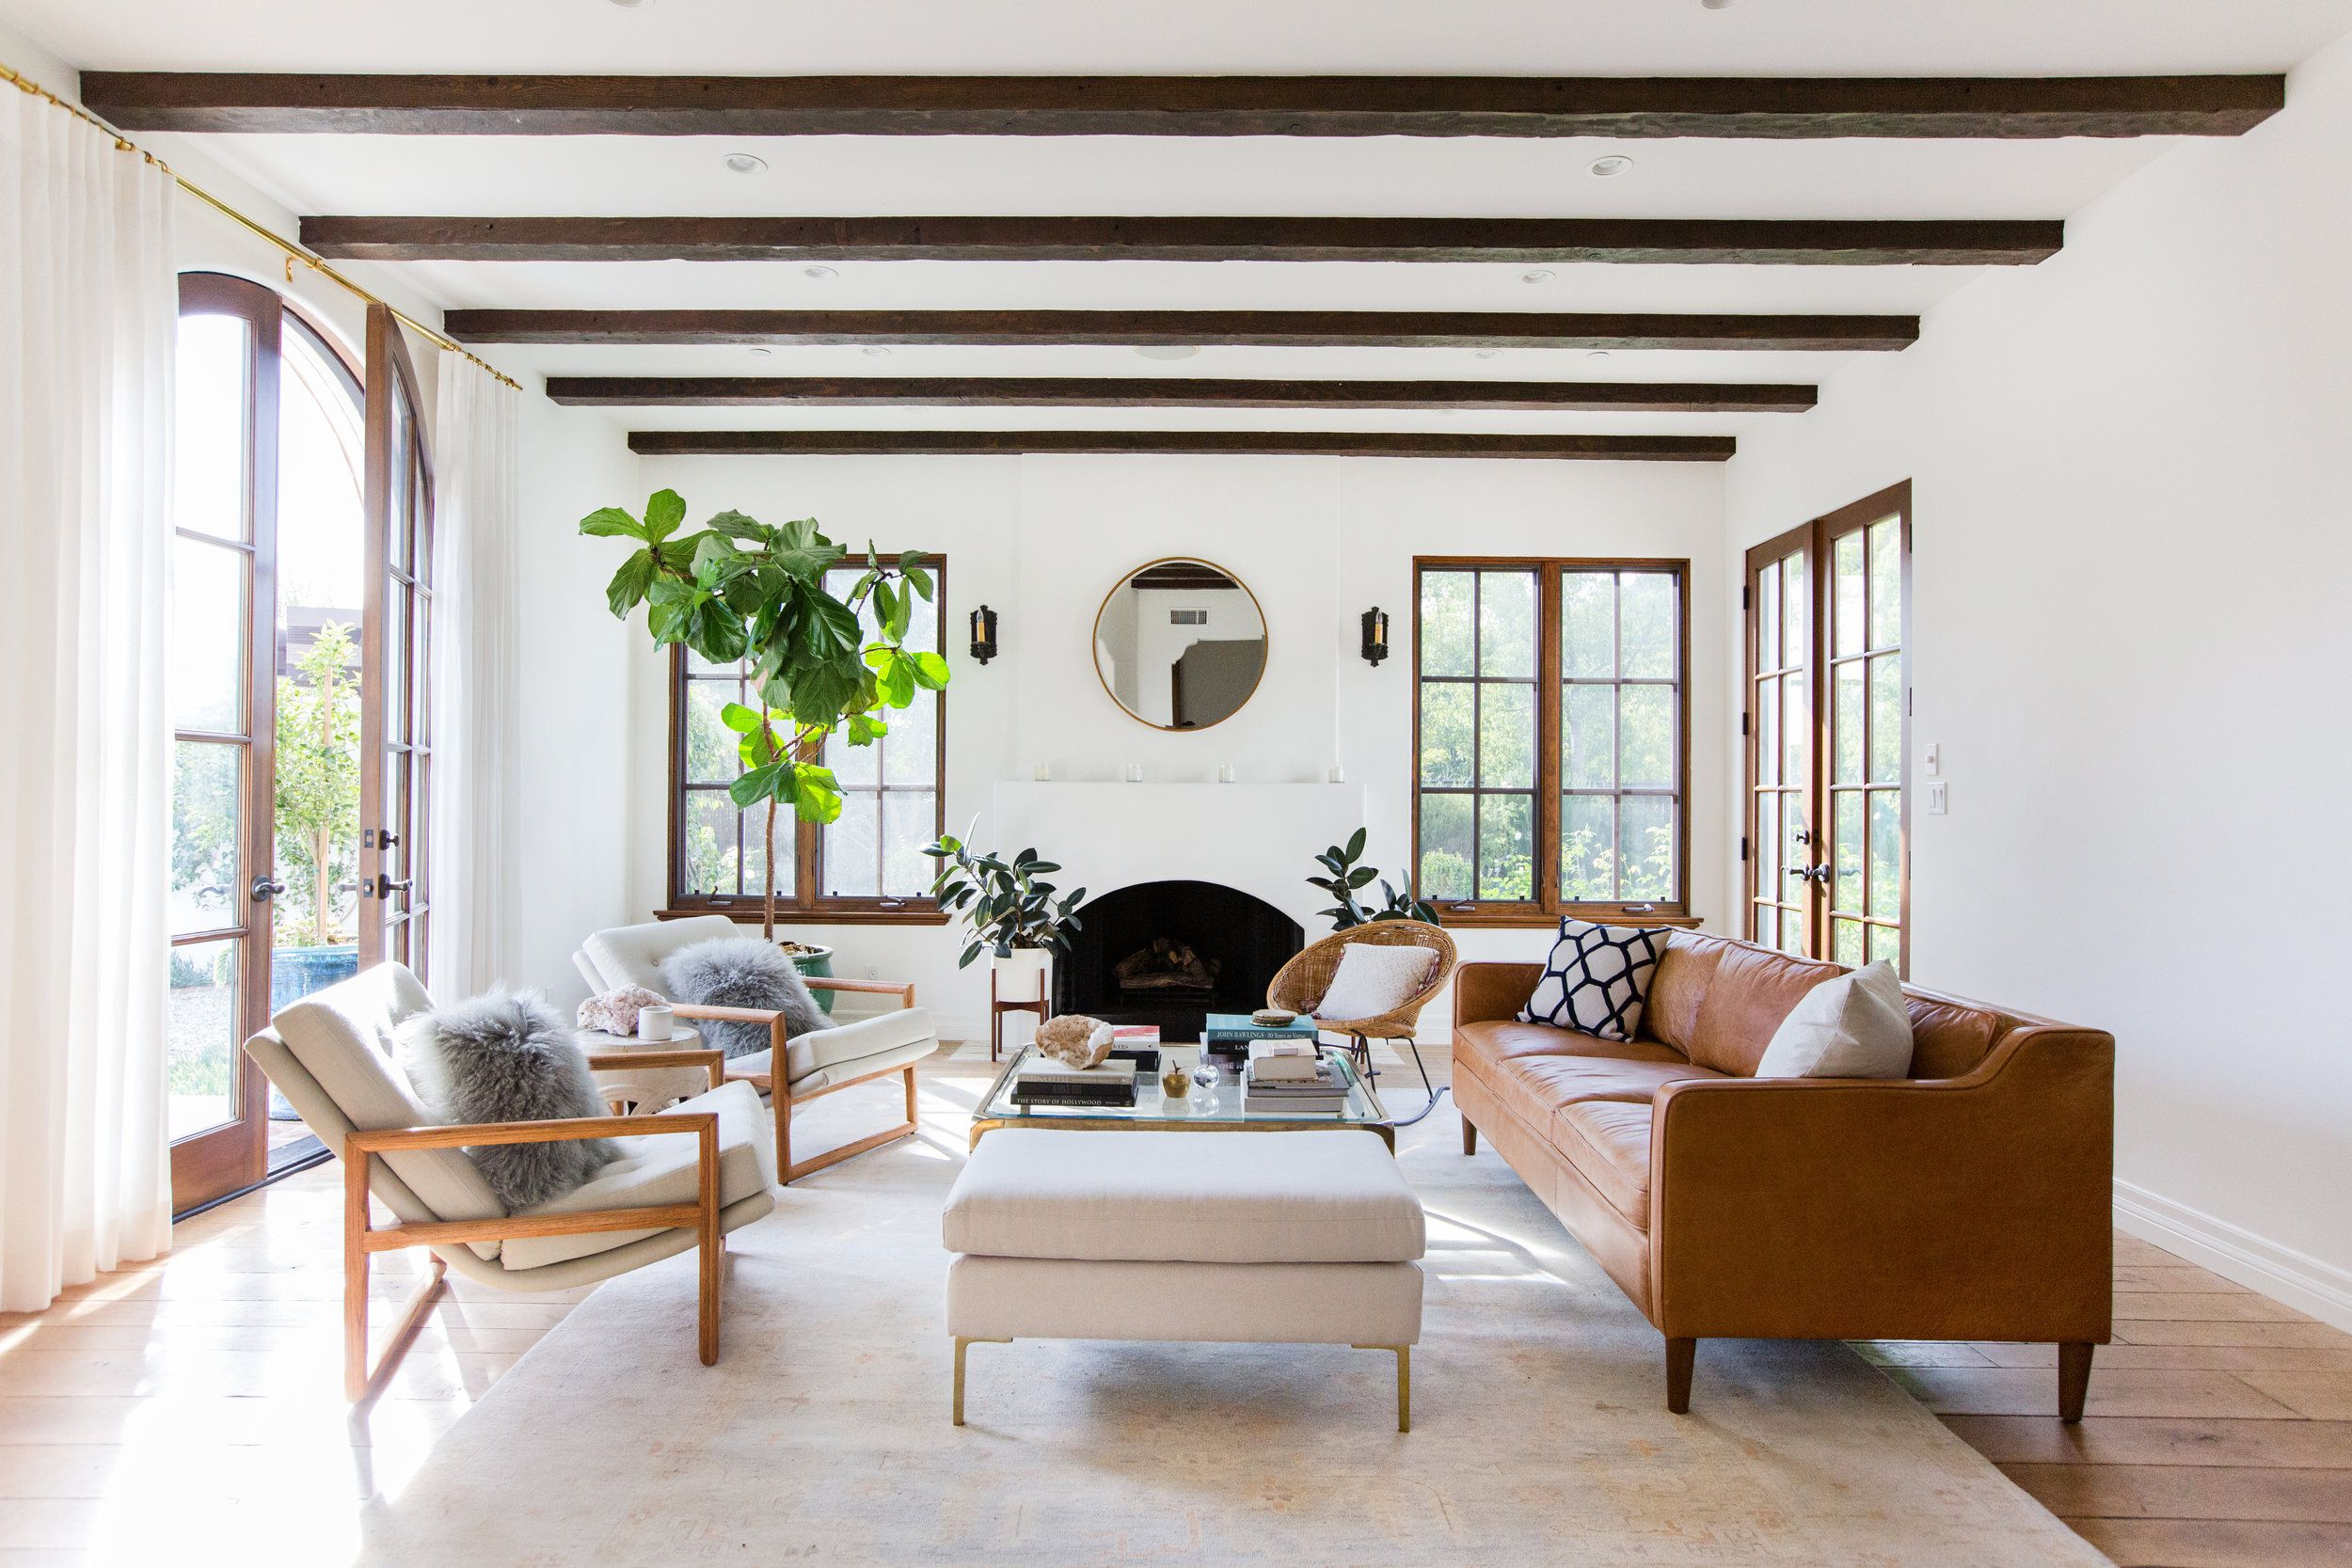 12 Easy Ways to Freshen Up Your Home for Spring